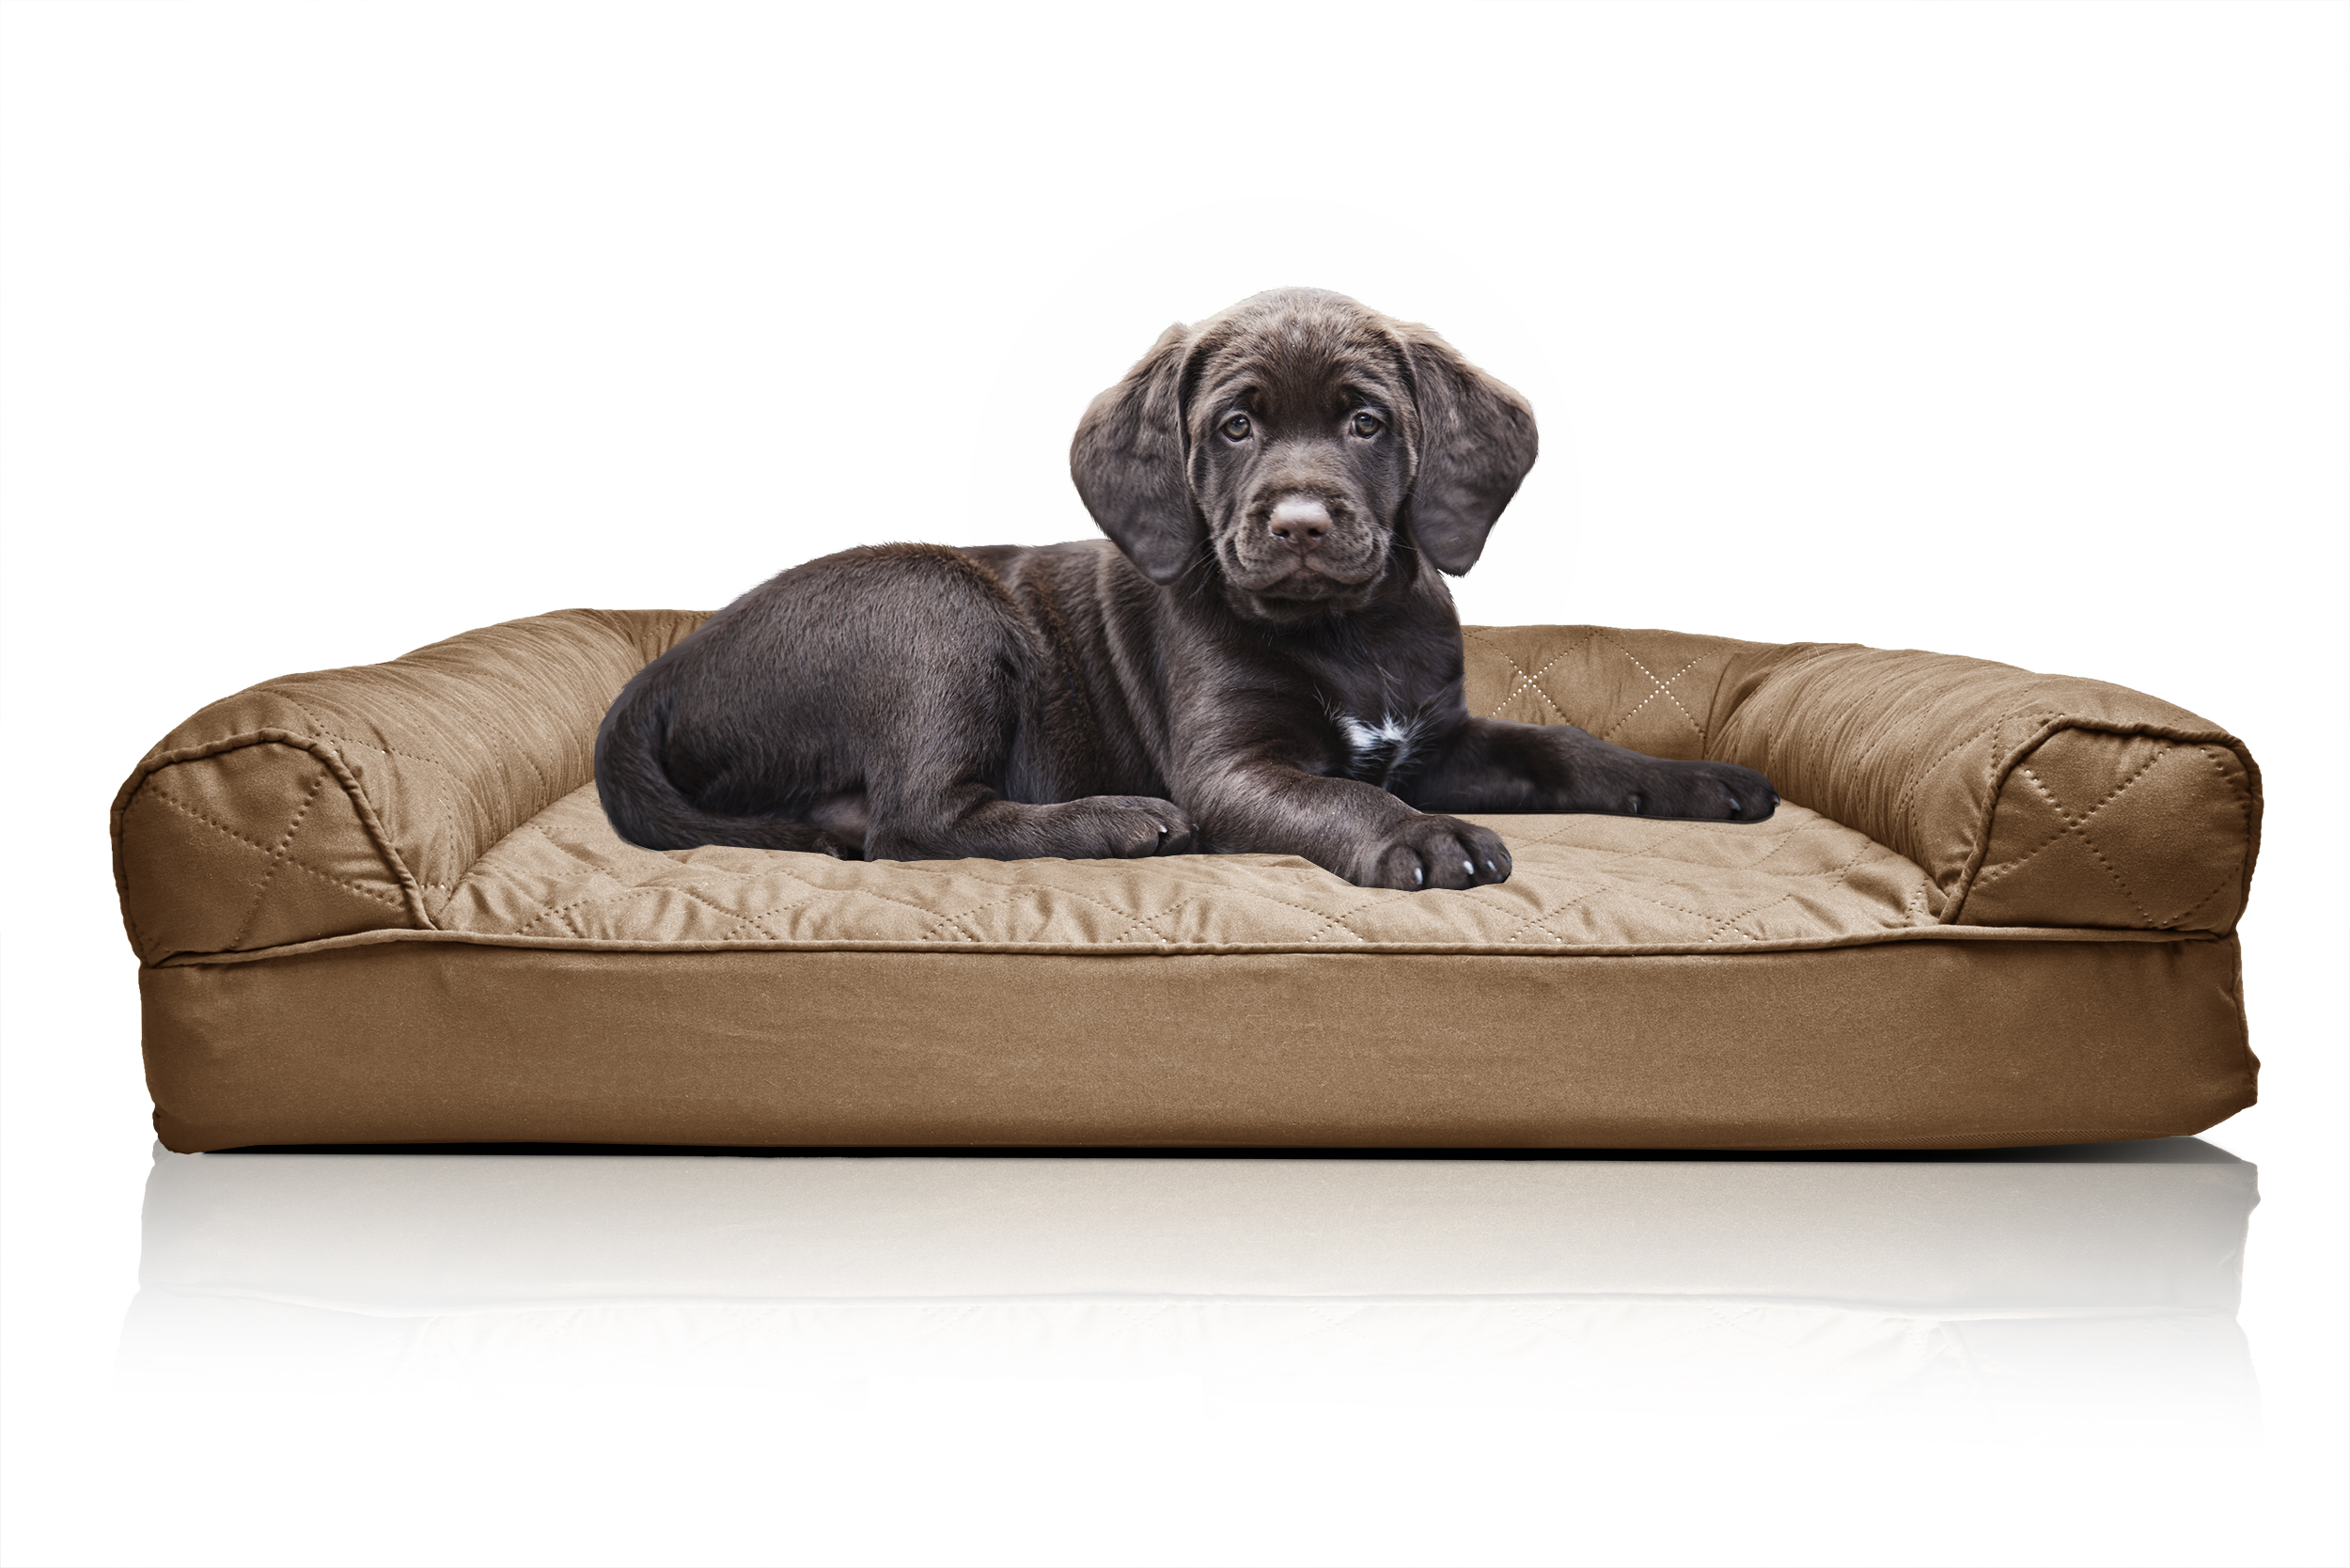 furhaven quilted orthopedic sofa dog bed pet bed ebay. Black Bedroom Furniture Sets. Home Design Ideas